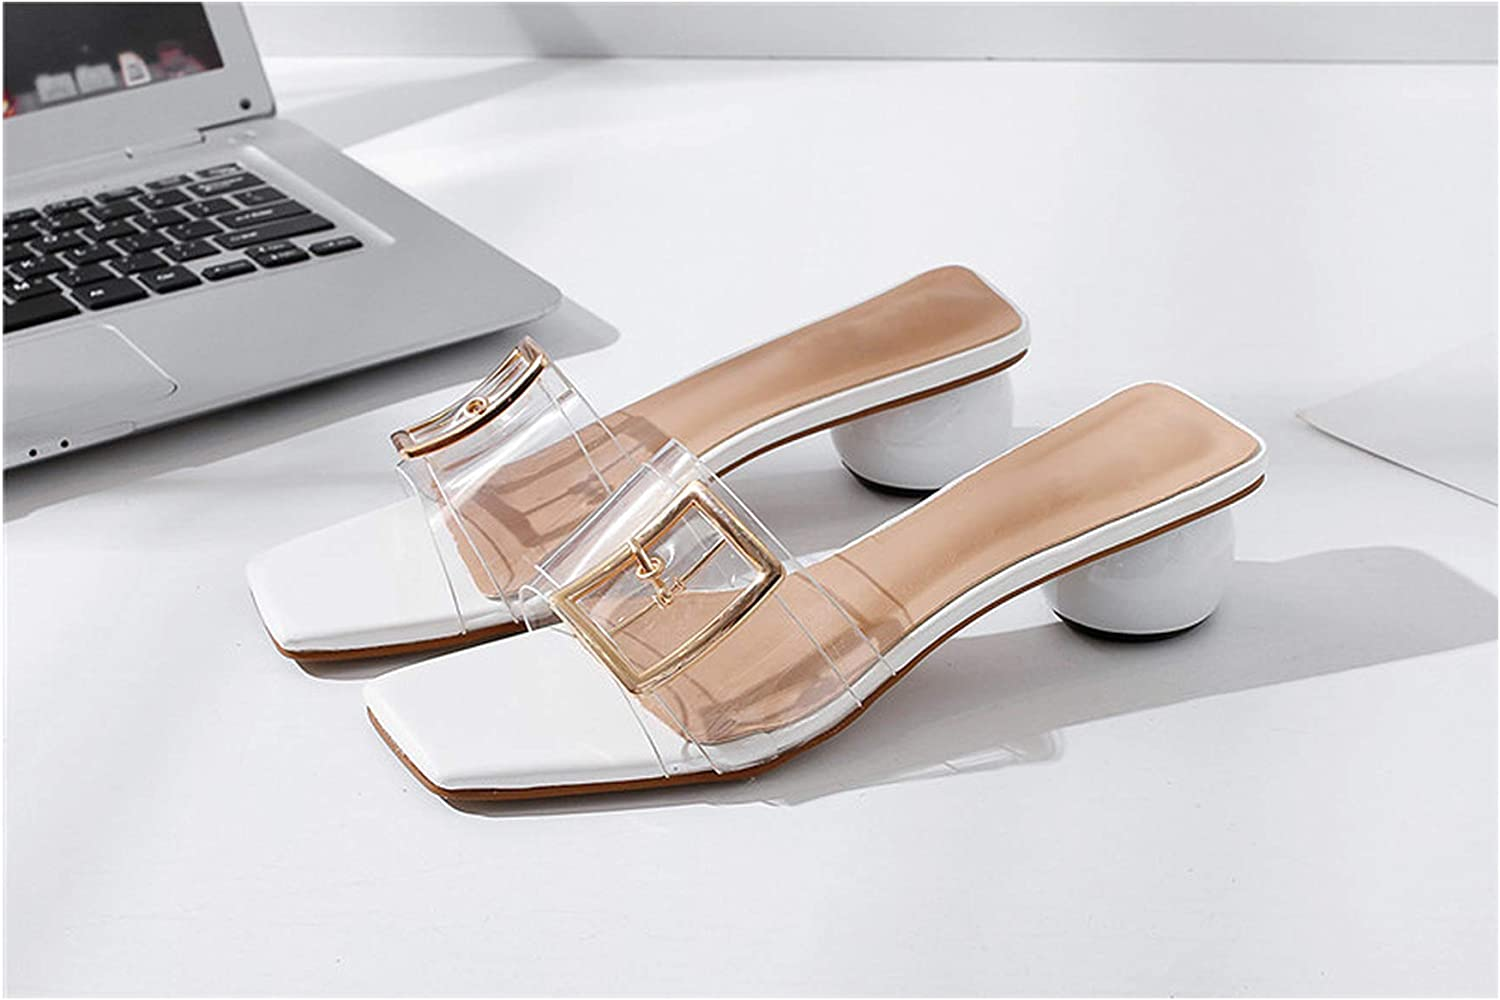 I Need-You New Women Sandals Block Heel Summer shoes Ladies High Heeled shoes Woman Buckle Female Footwear Slippers Sandals